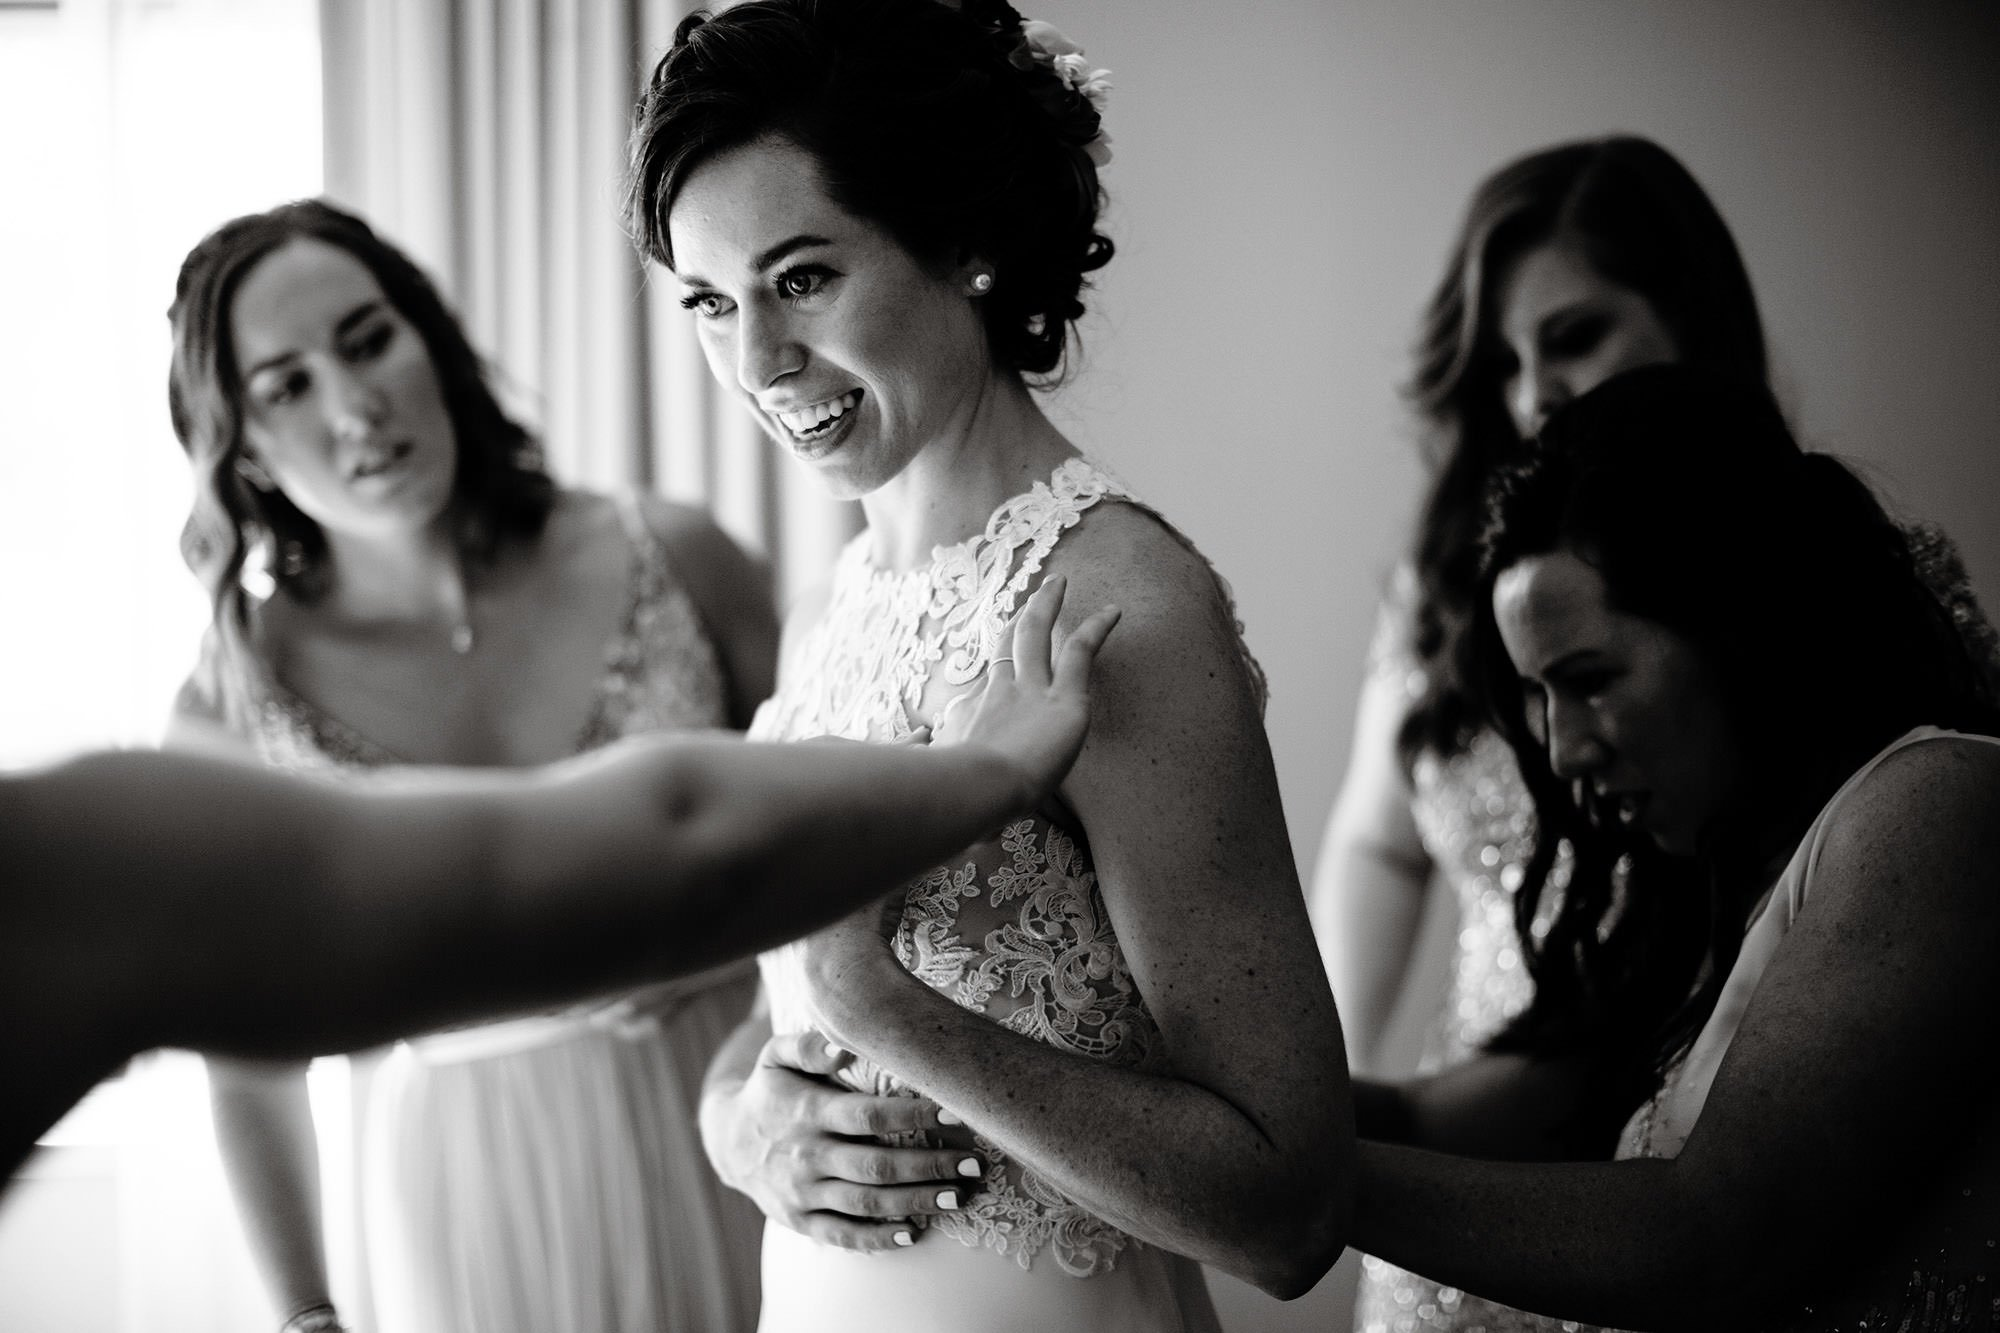 The bride puts on her dress prior to the ceremony.